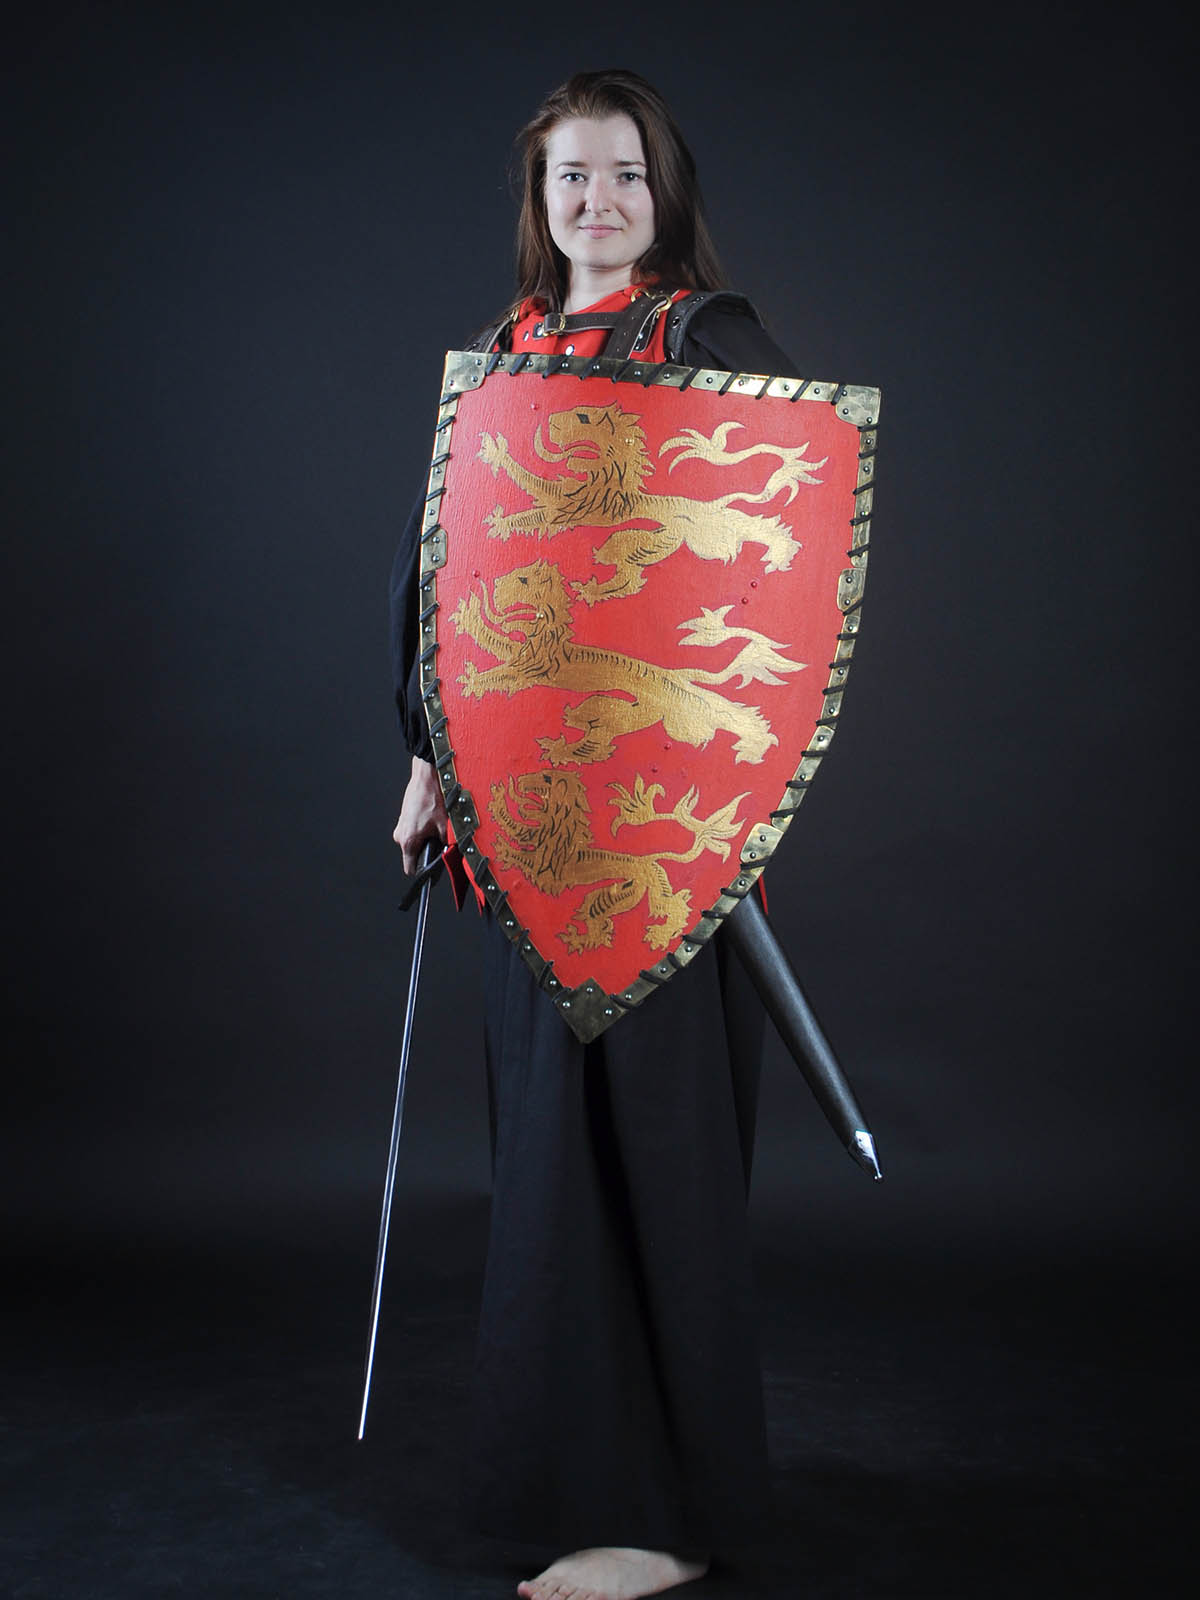 Painted shield - beautiful protection!